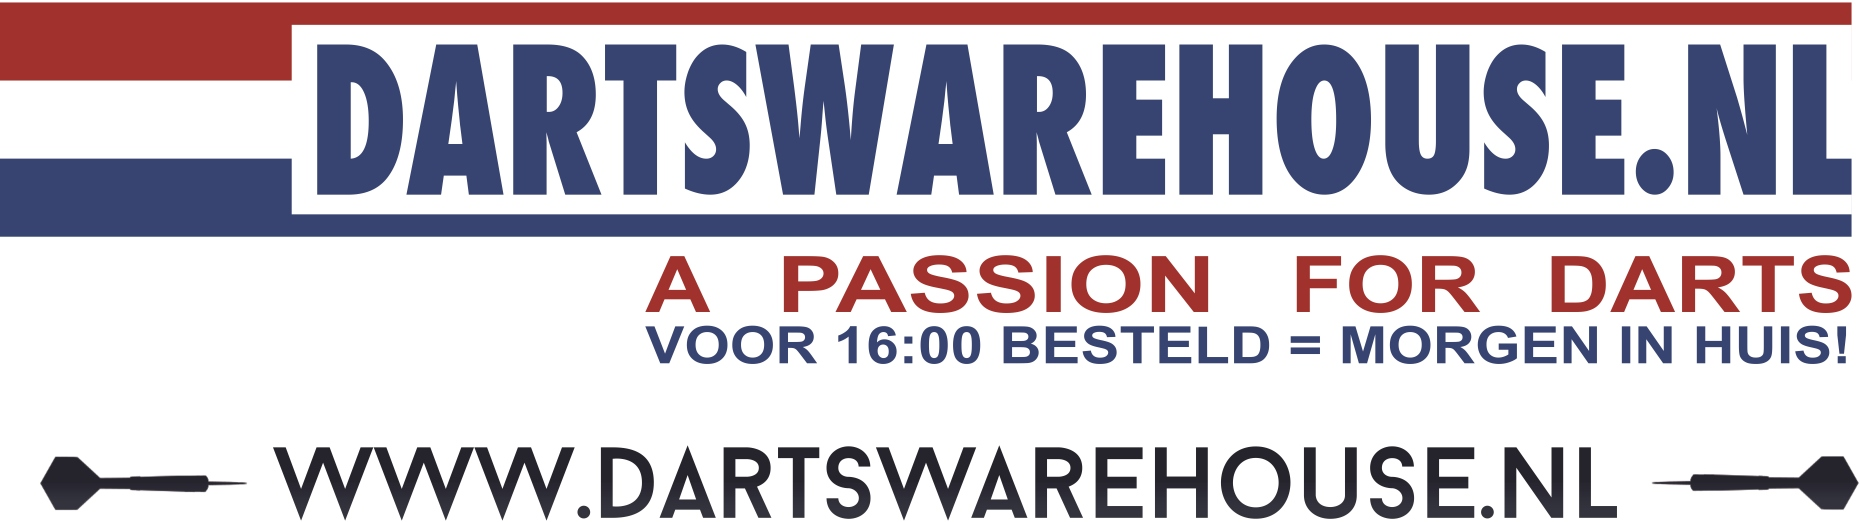 Darts Warehouse - A Passion for Darts